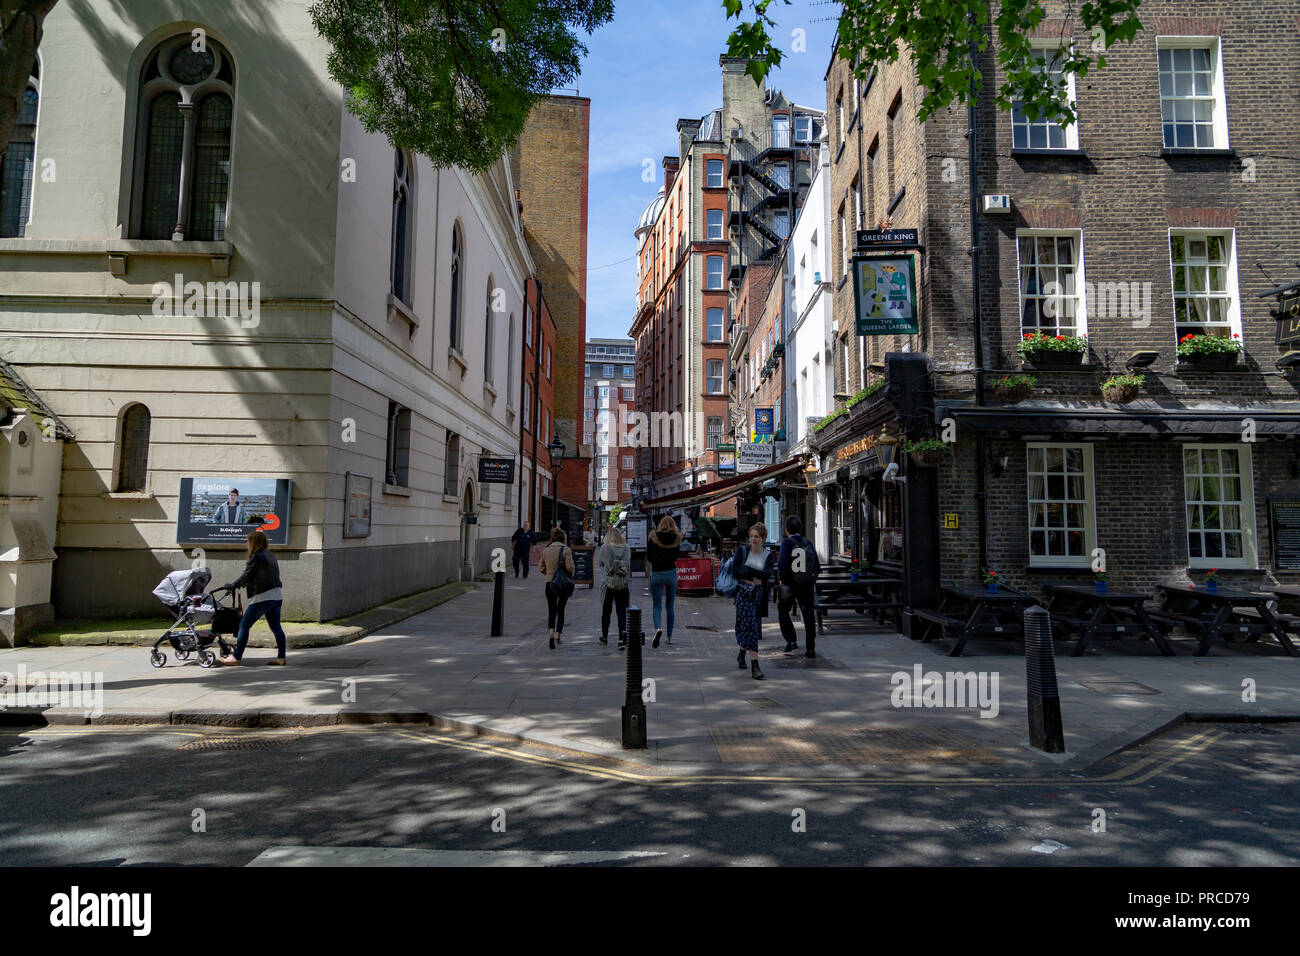 The Queens Larder Pub, Cosmo Place, Bloomsbury, London, UK - Stock Image